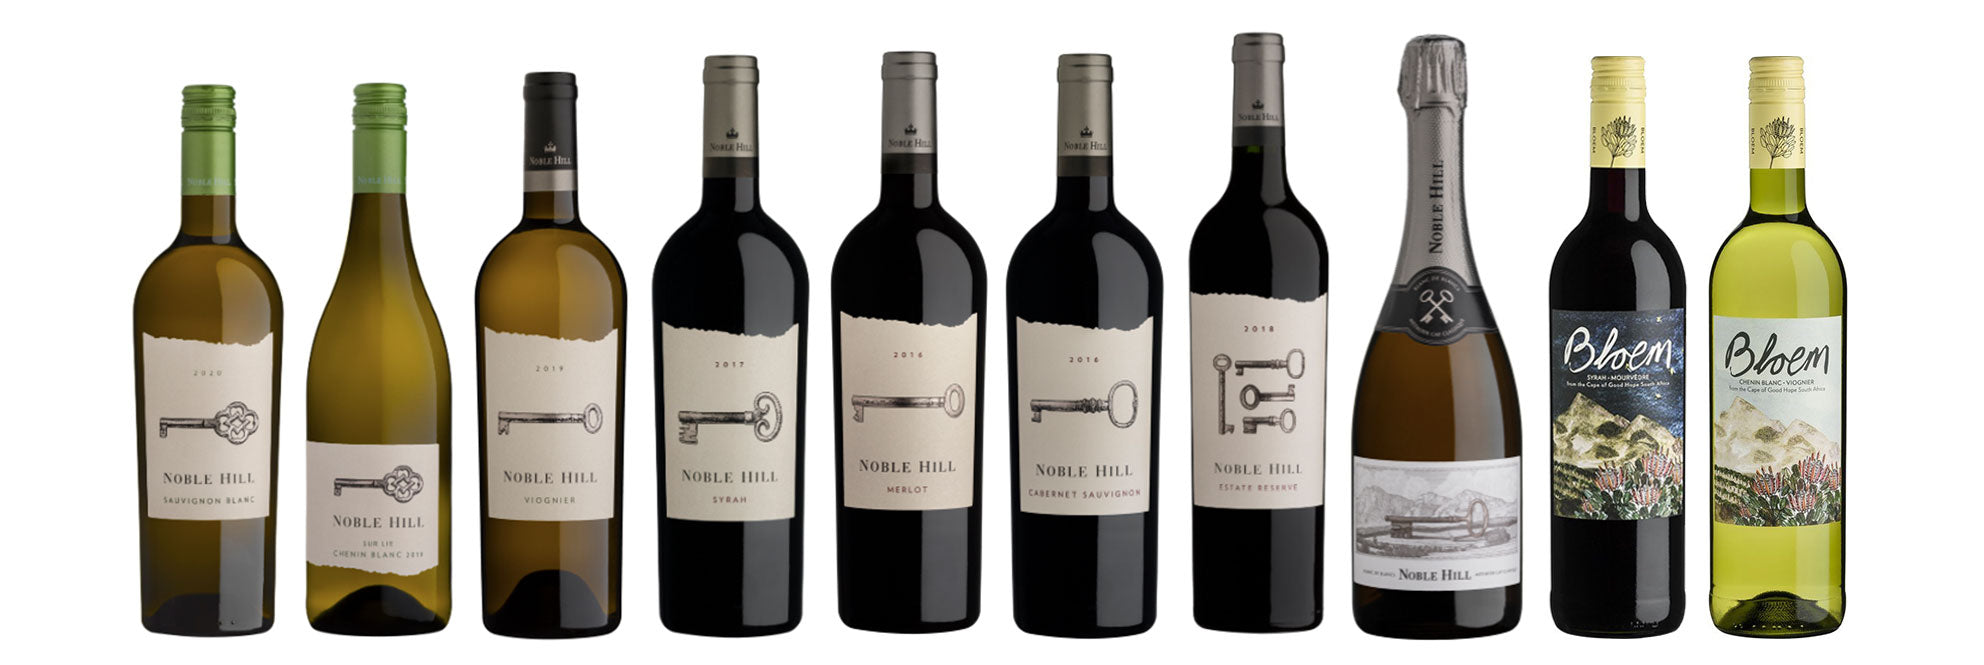 Noble Hill Wines